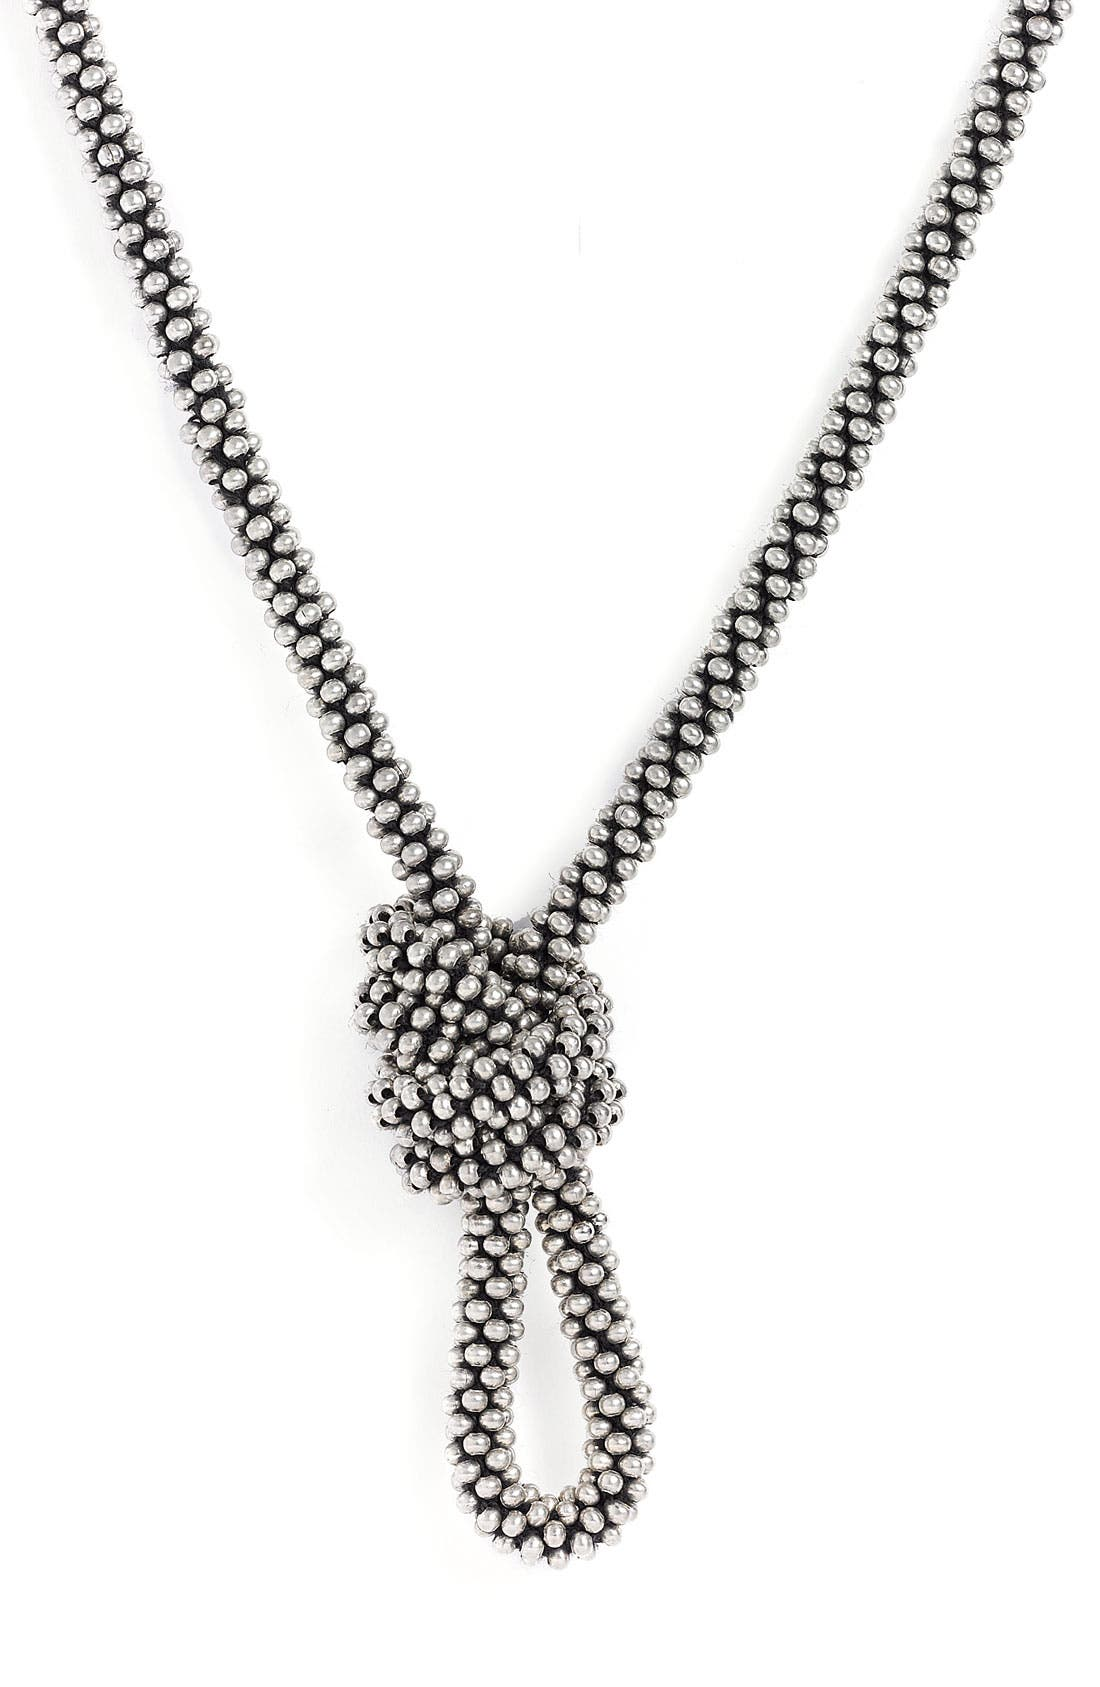 'Endless' Beaded Necklace,                             Main thumbnail 1, color,                             040